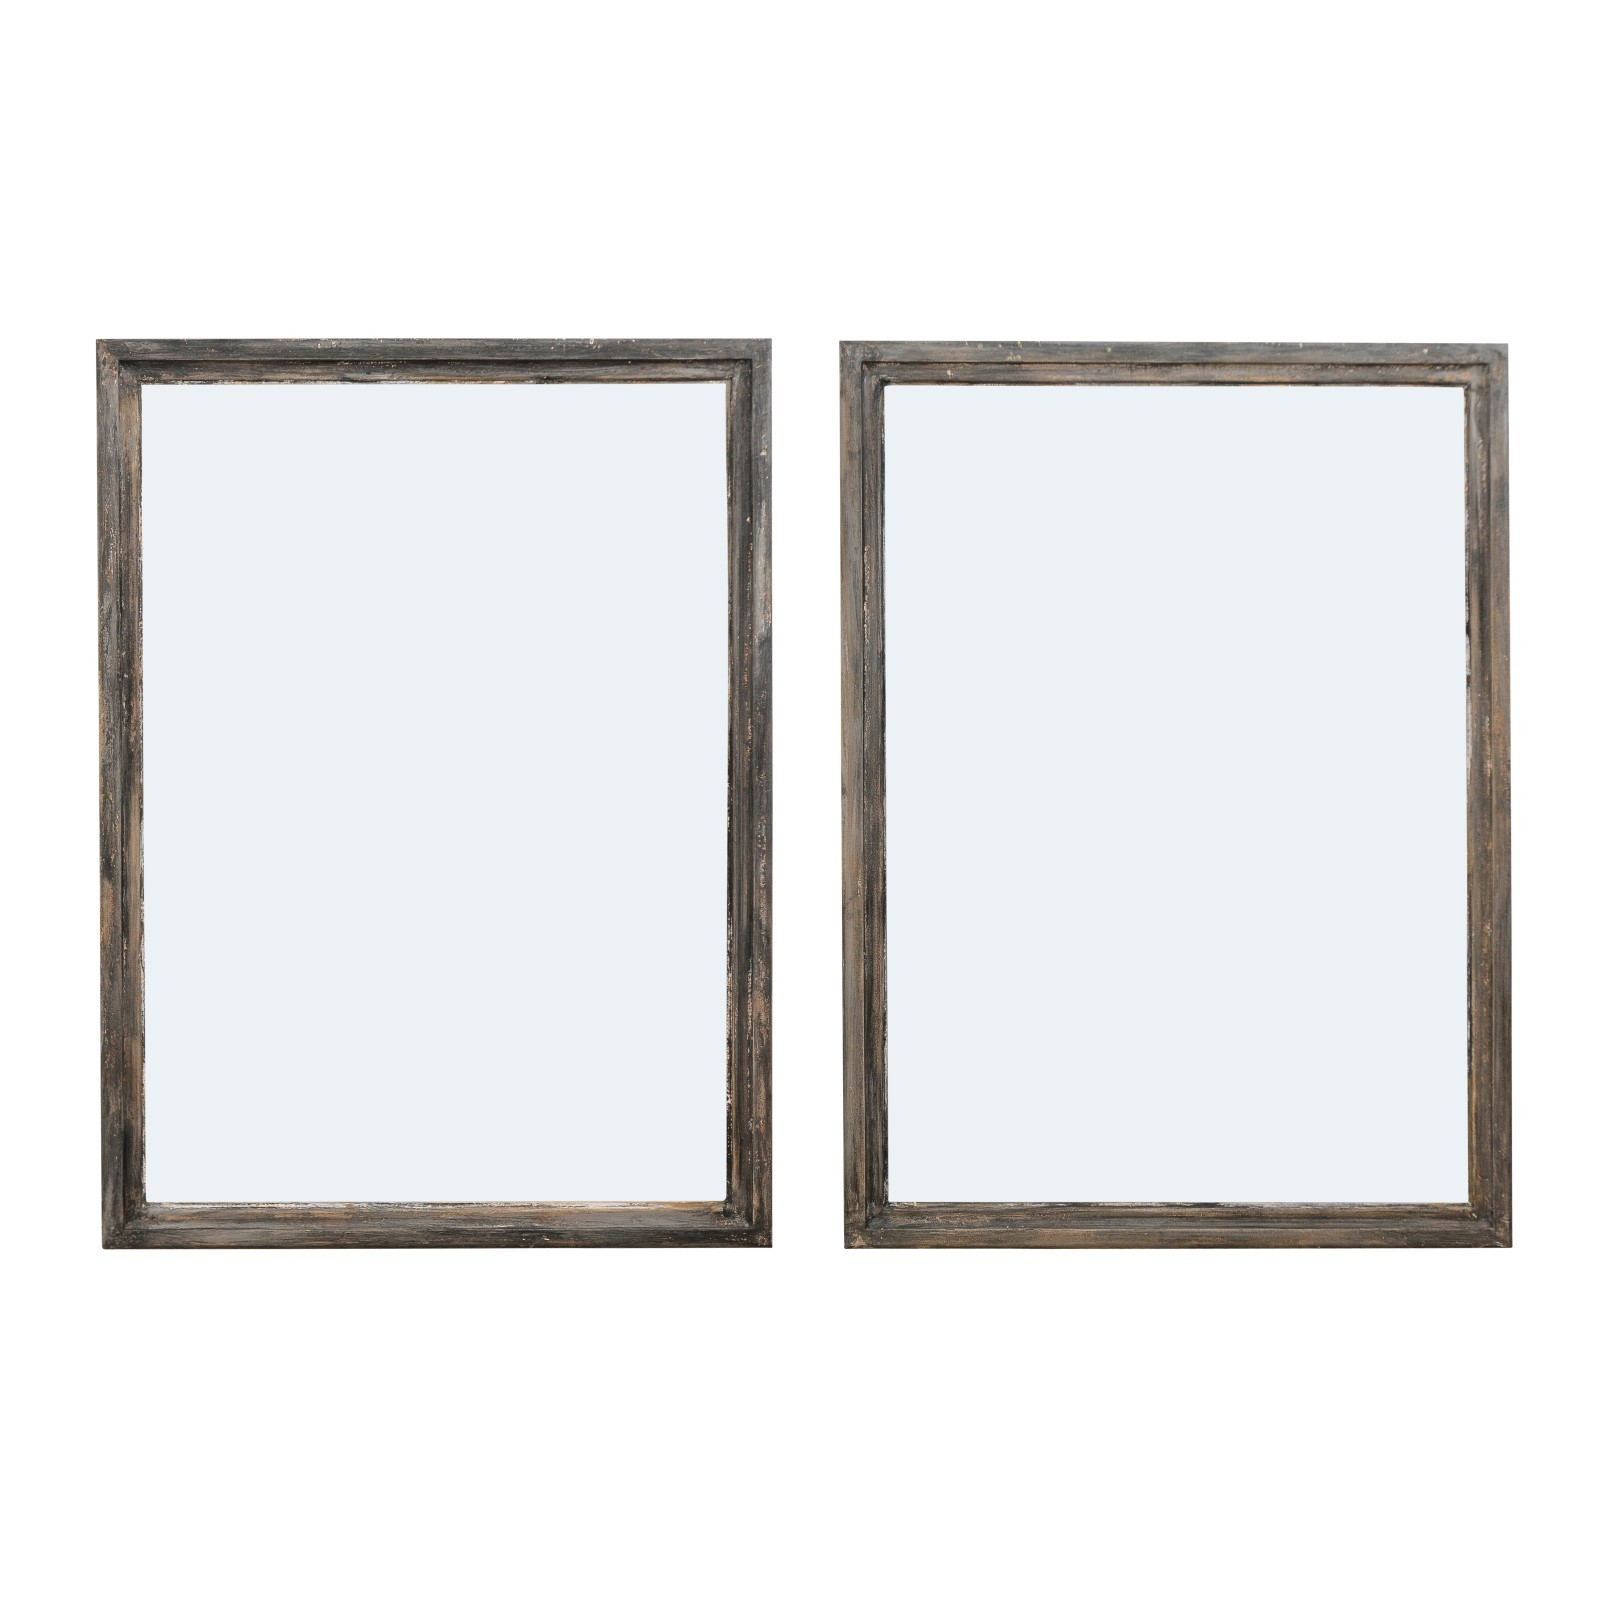 Pair French Rectangular Mirrors